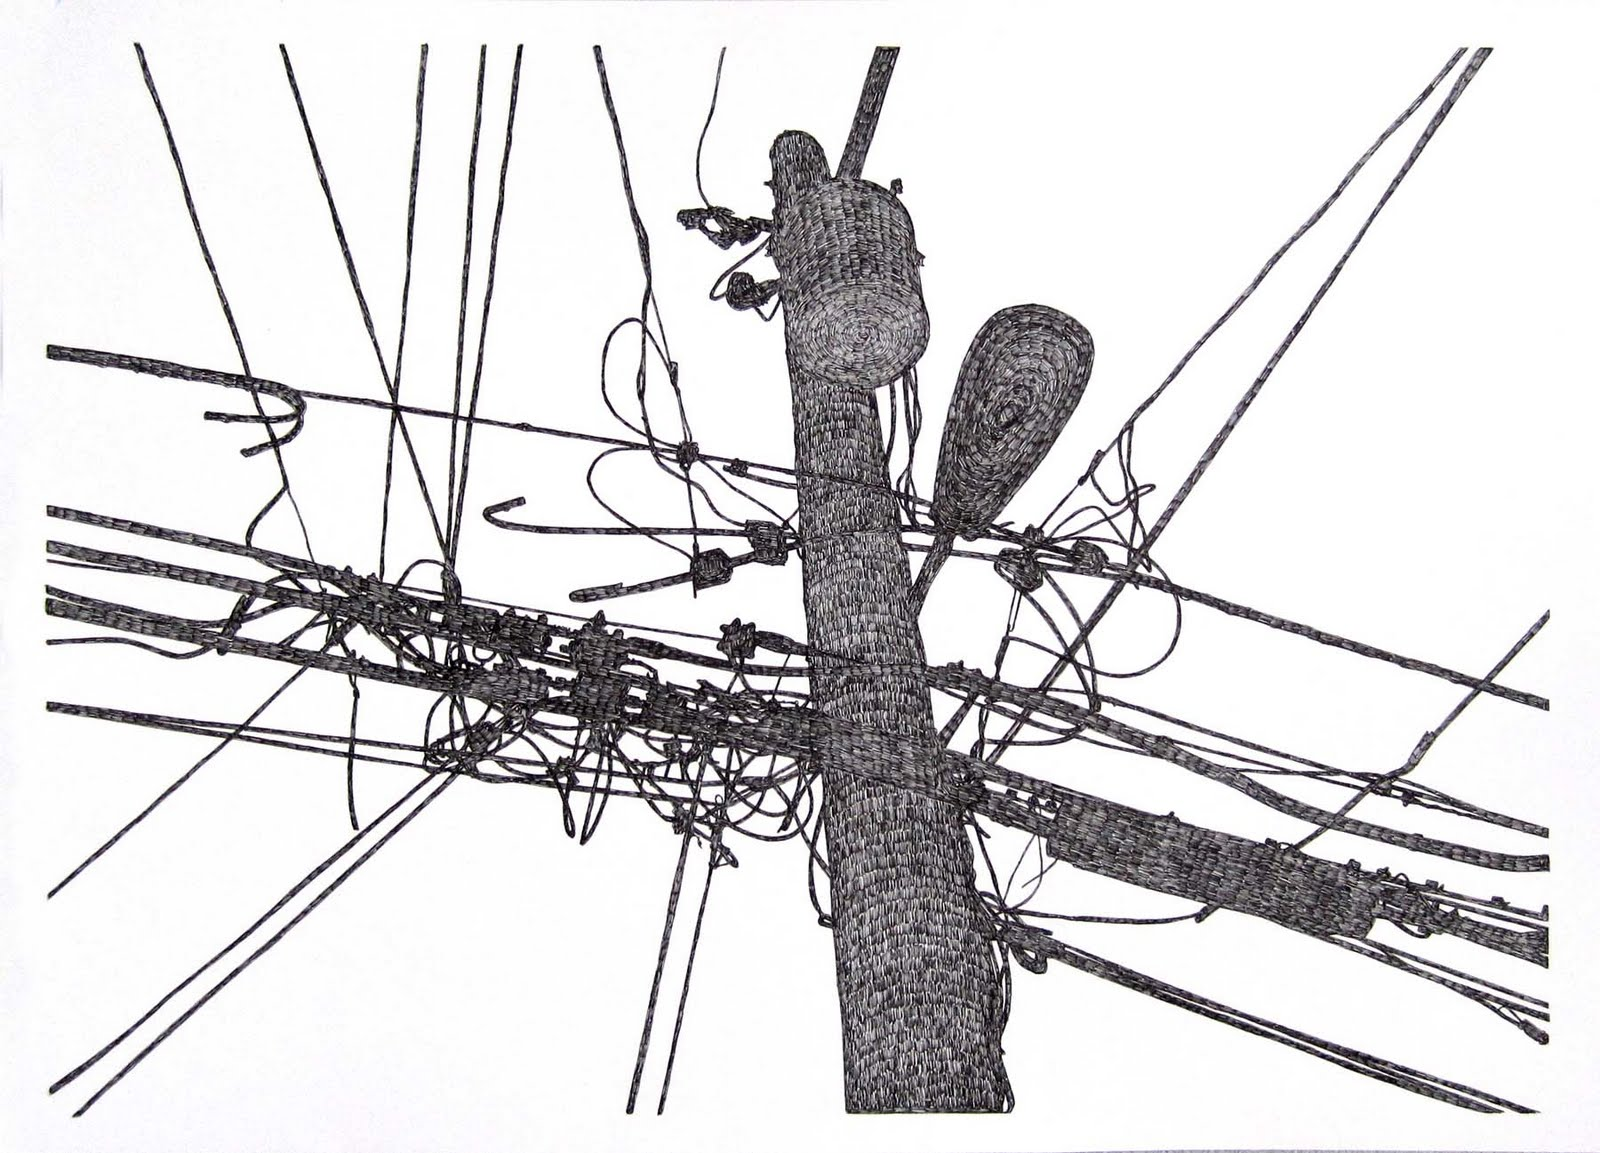 of the telephone pole in